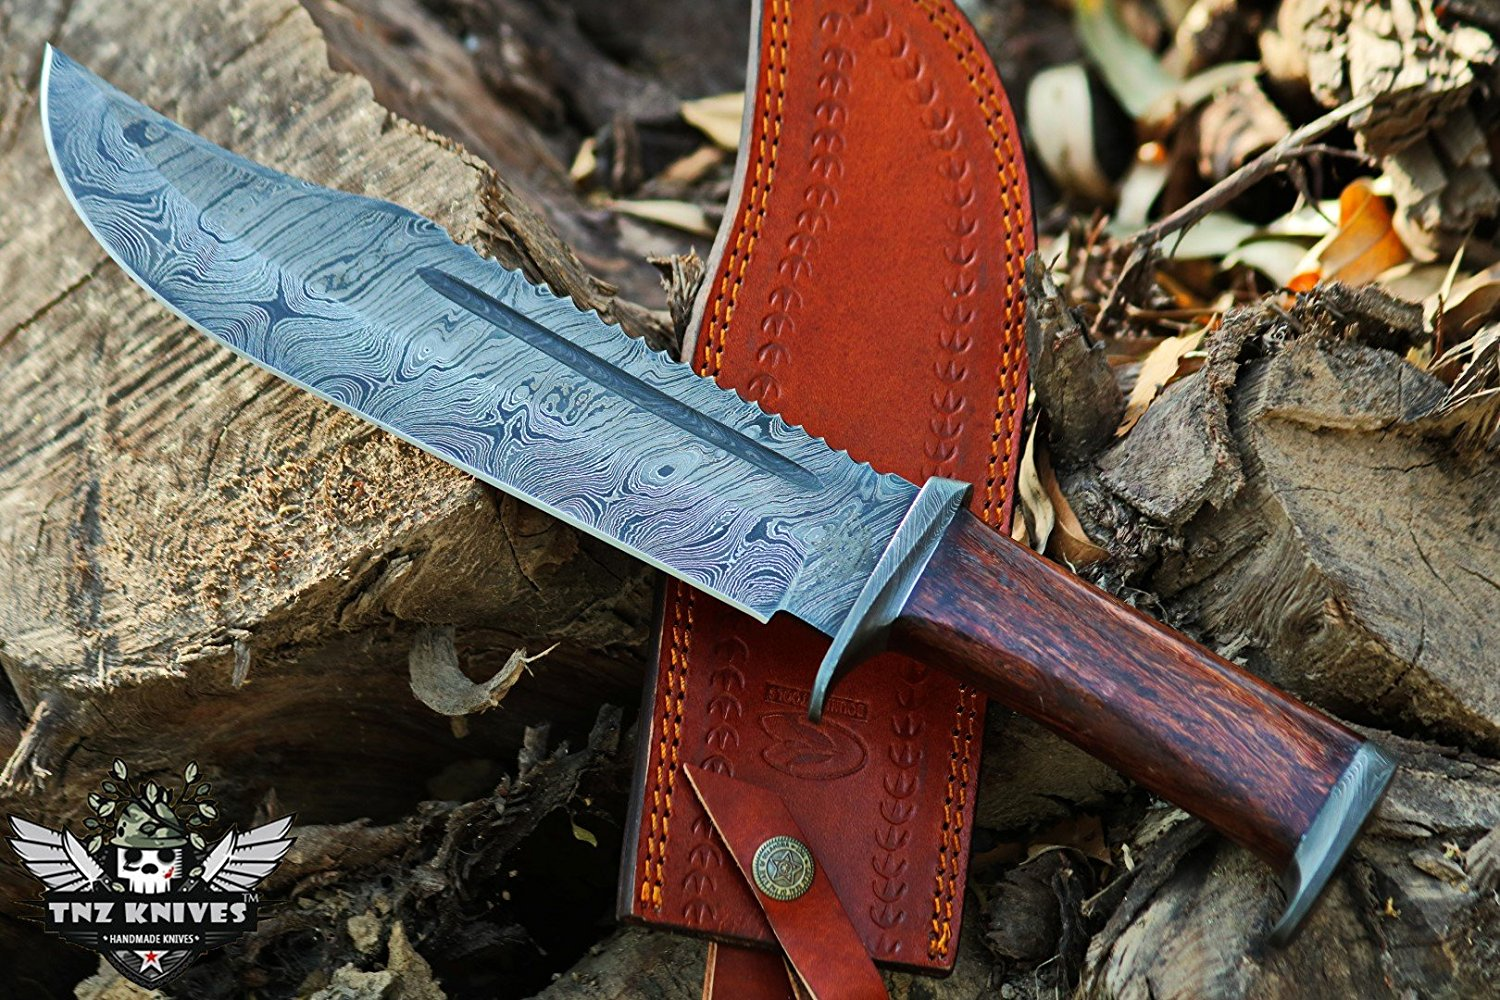 TNZ-1179-W Damascus Knife 14″ Long 9″Blade 15oz Hunting Bowie Camping Damascus knife Bowie Outdoor Knife With Leather Cover TNZ Hand Made Damascus knives